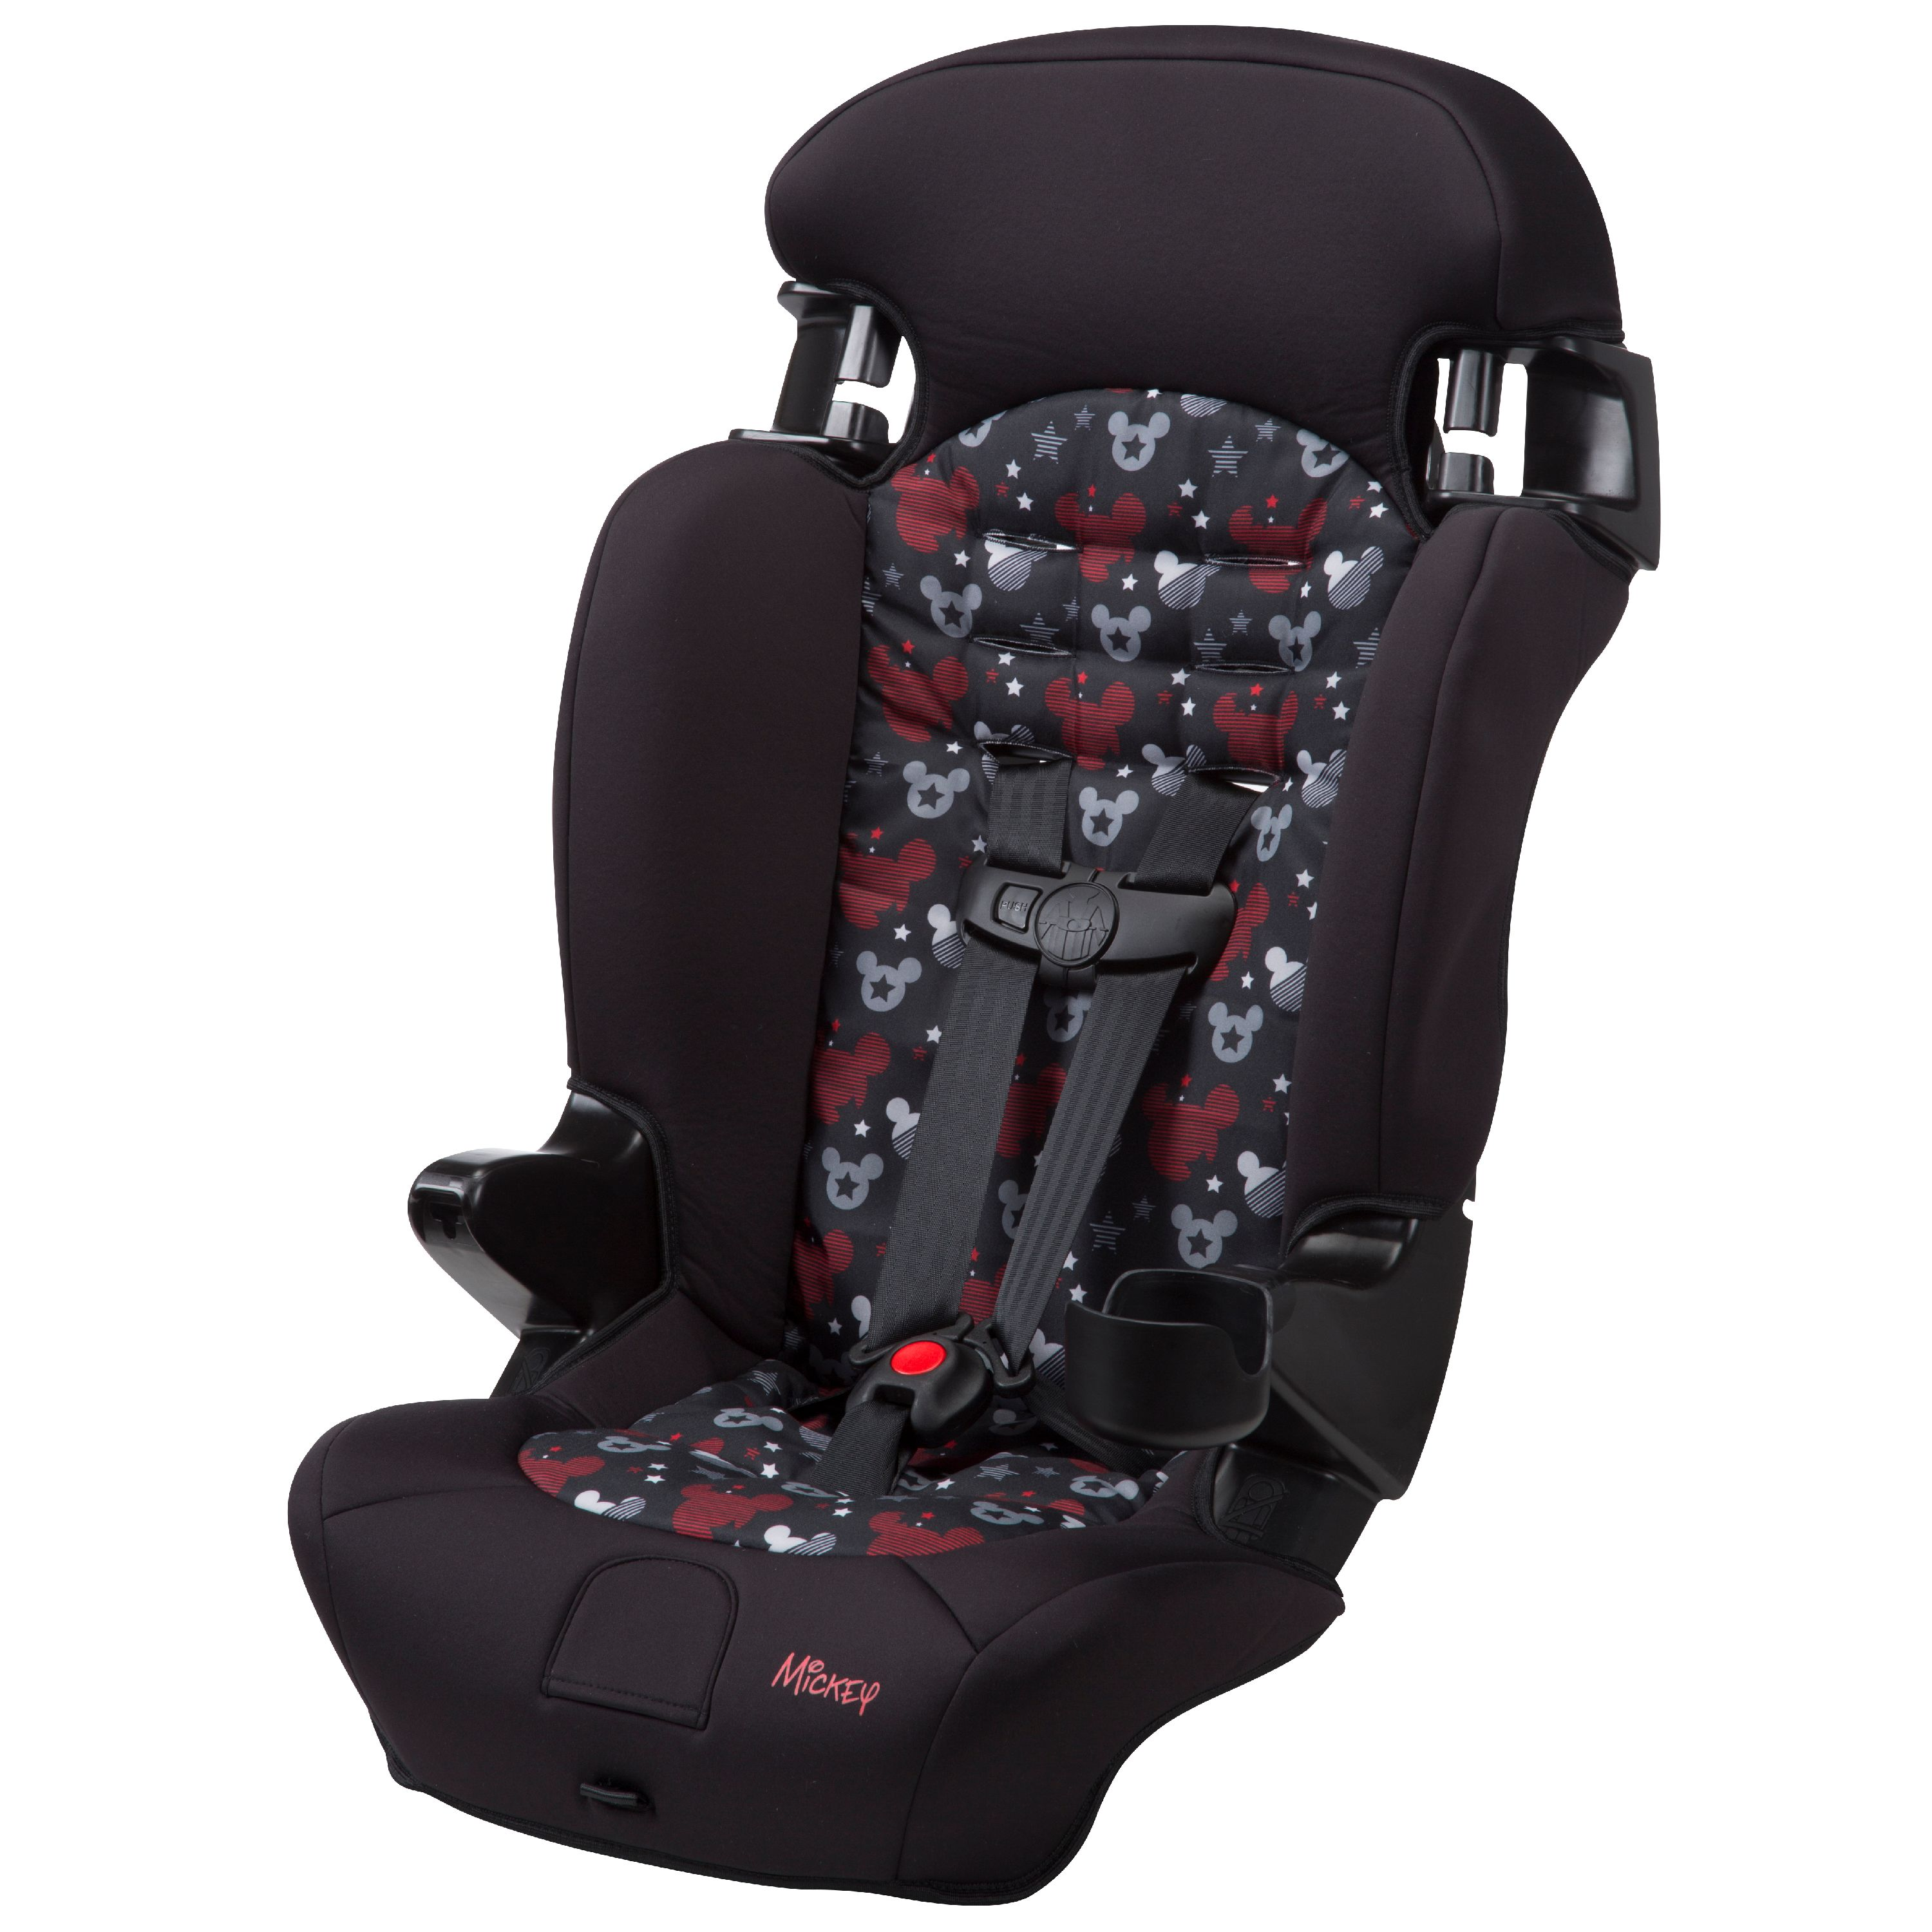 Cosco Finale 2-in-1 High Back Booster Car Seat